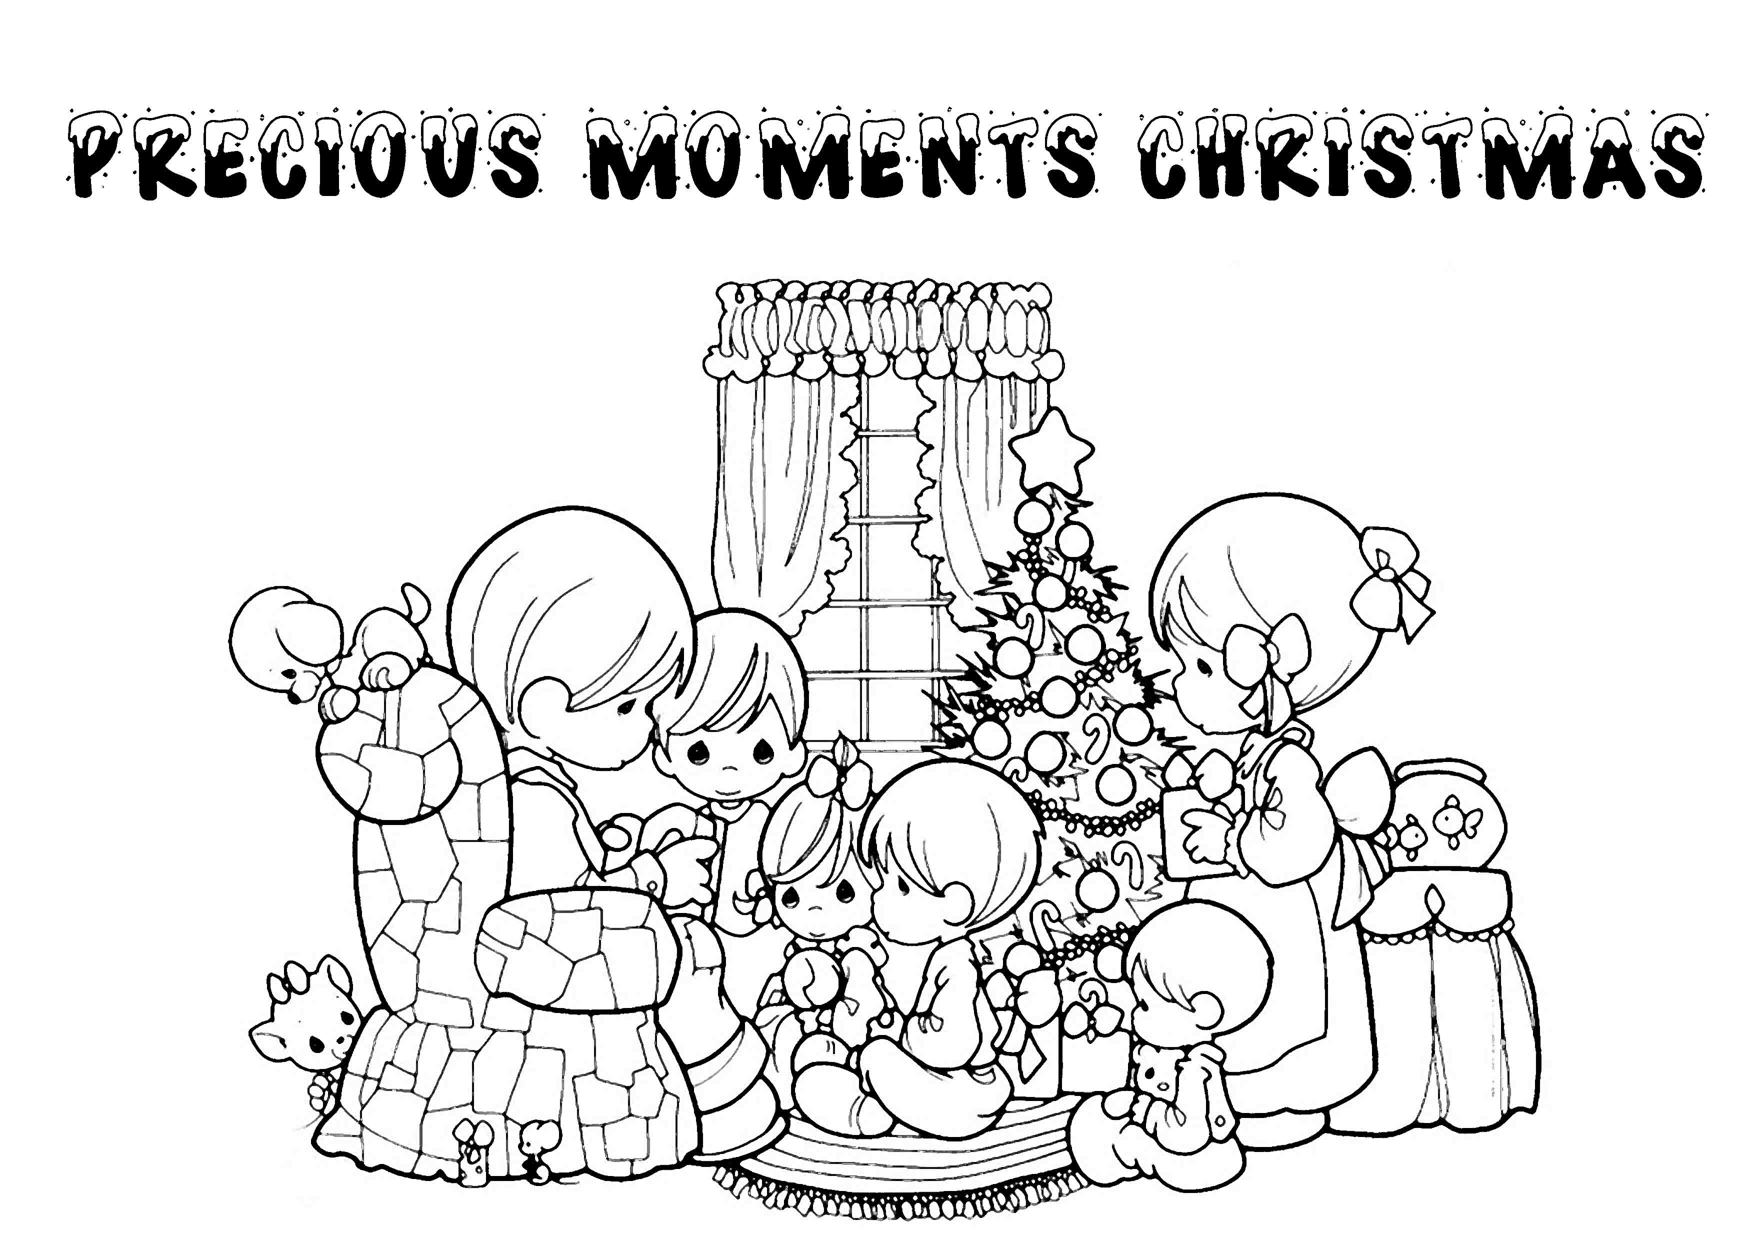 Christmas Coloring Card With Print Download Printable Pages For Kids